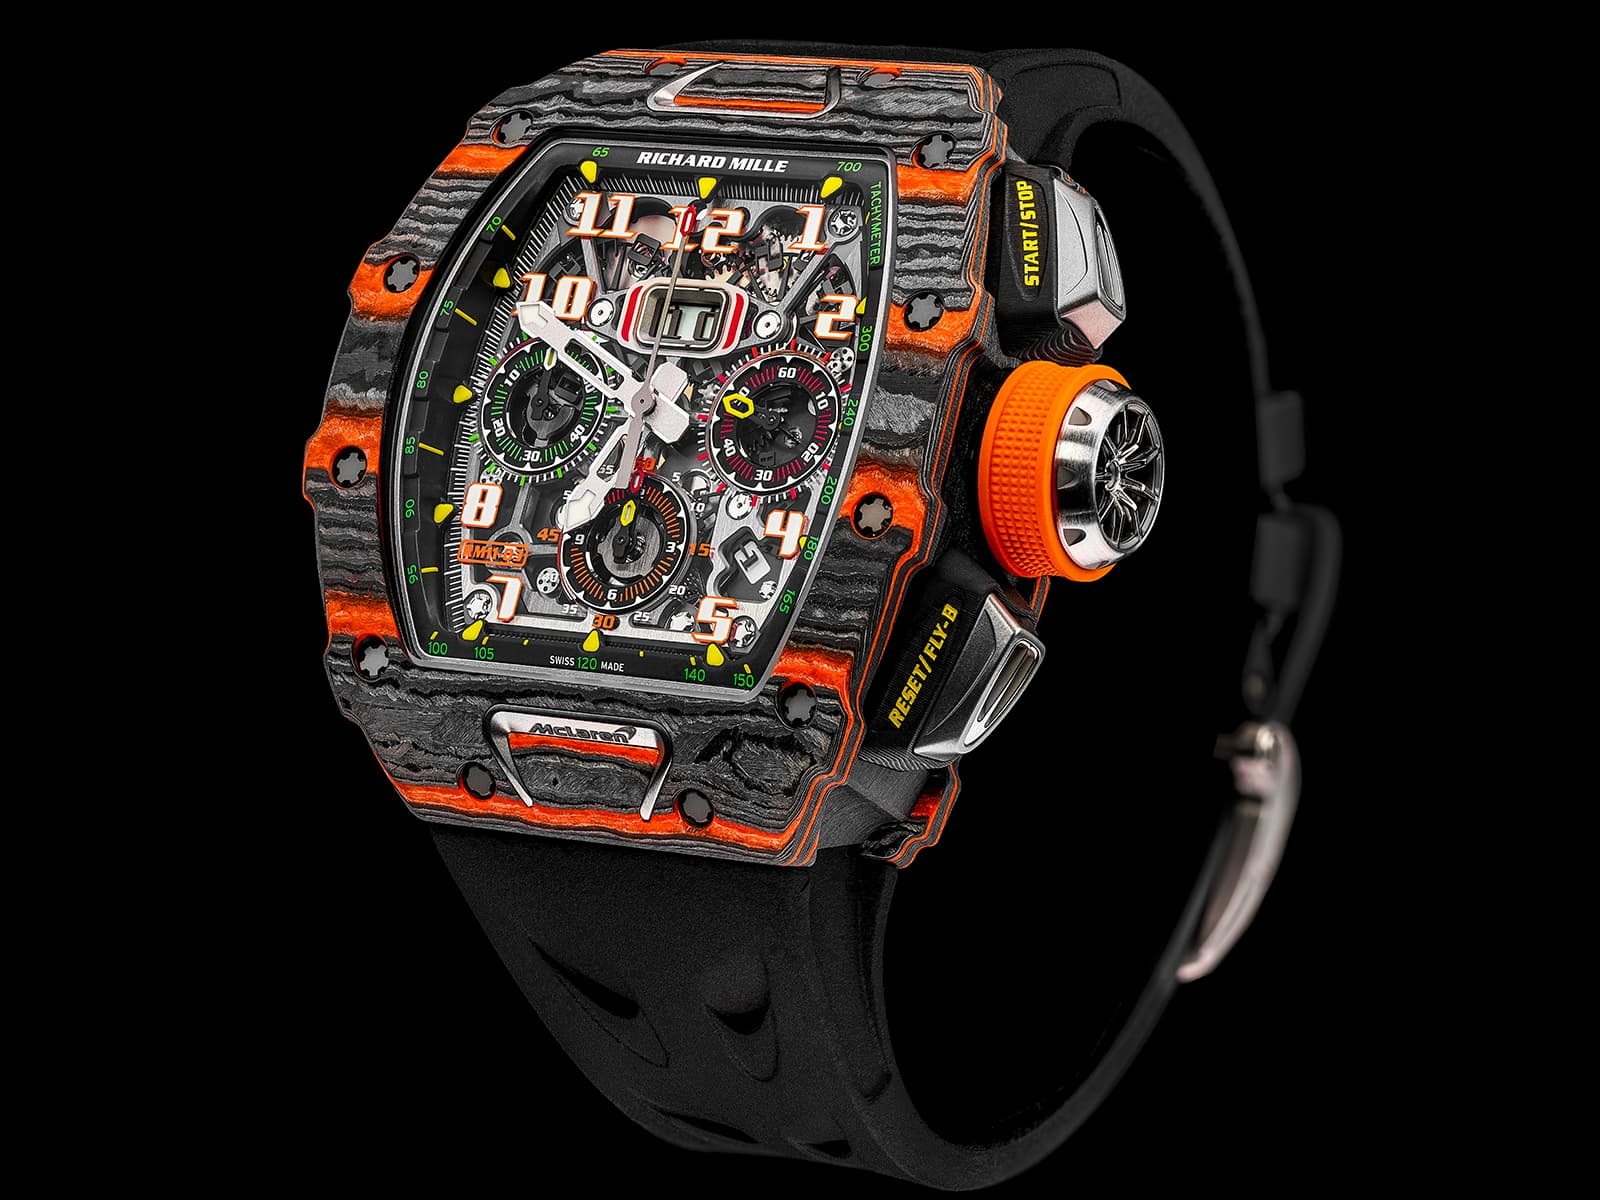 richard-mille-rm-11-03-mcLaren-automatic-flyback-chronograph-14-.jpg